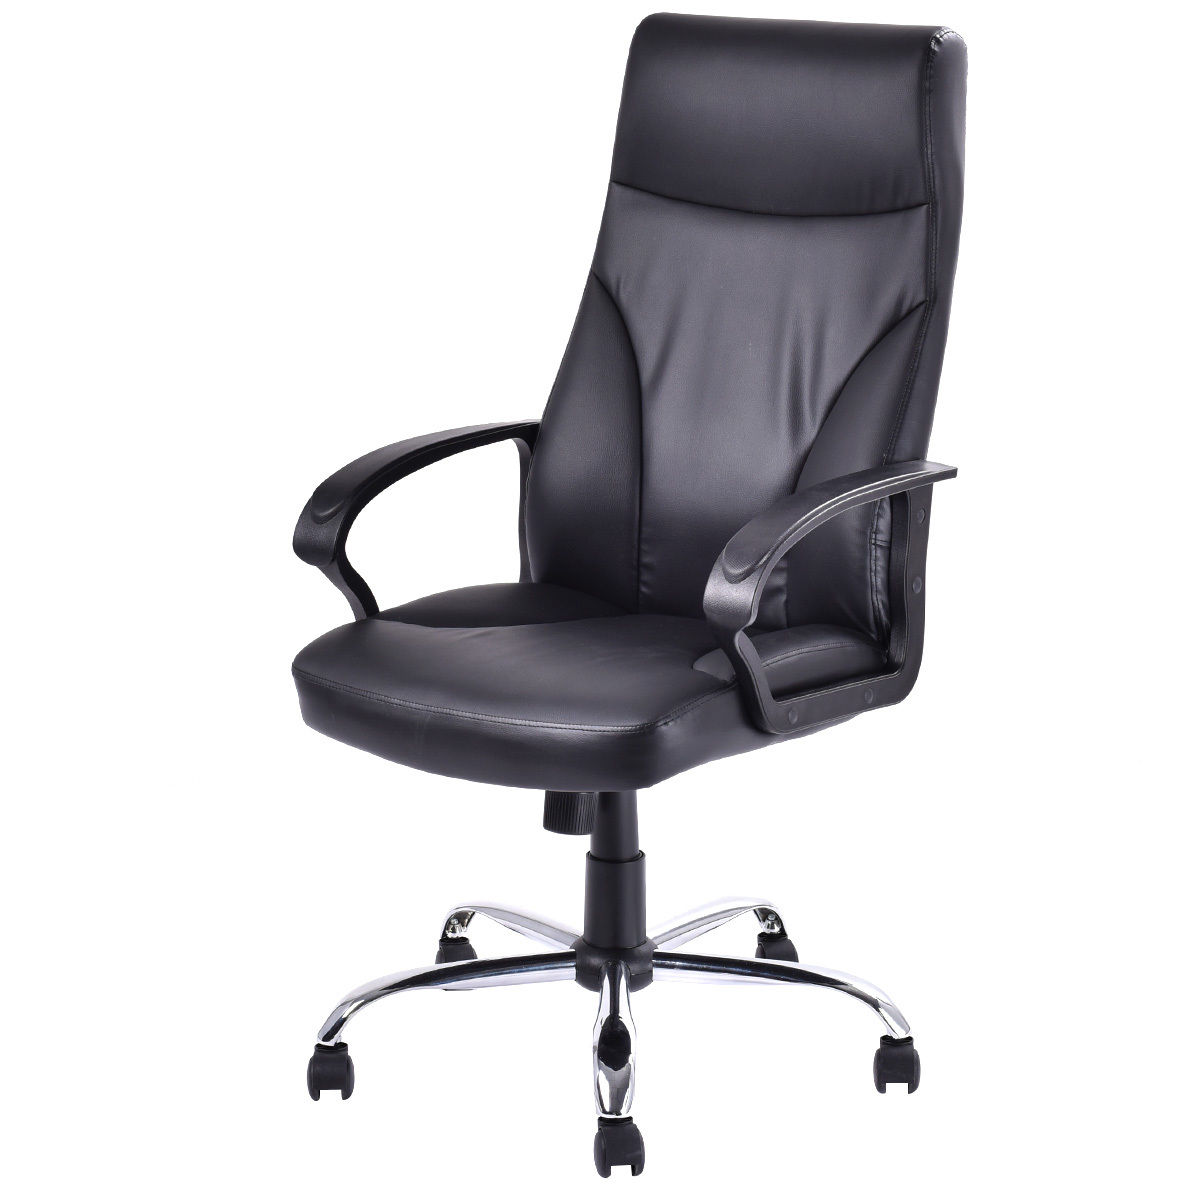 Giantex PU Leather High Back Office Chair Executive Computer Desk Task Armchairs Modern Swivel Adjustable Gaming Chair HW52713